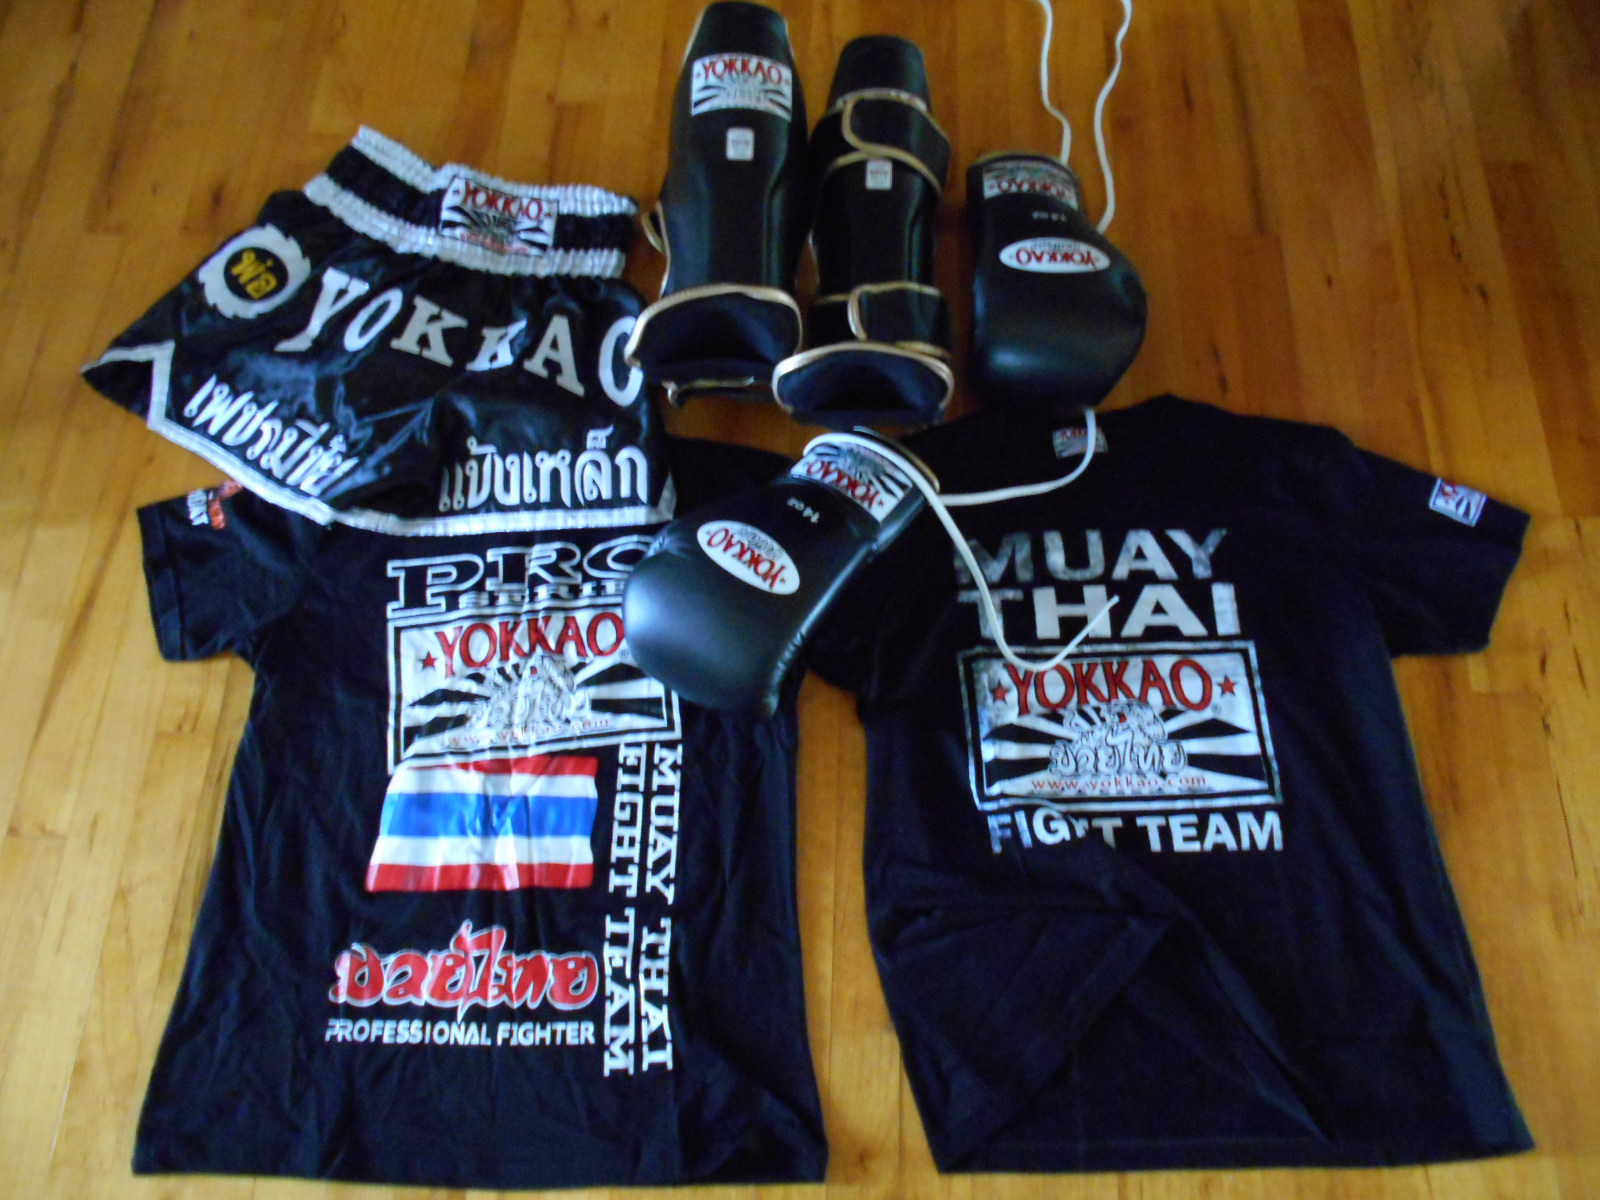 Yokkao black gloves - So Last Week I Got A Fresh New Pair Of Yokkao Shin Guards And Boxing Gloves I Ve Wanted To Get My Hands On This Gear For Some Time Now